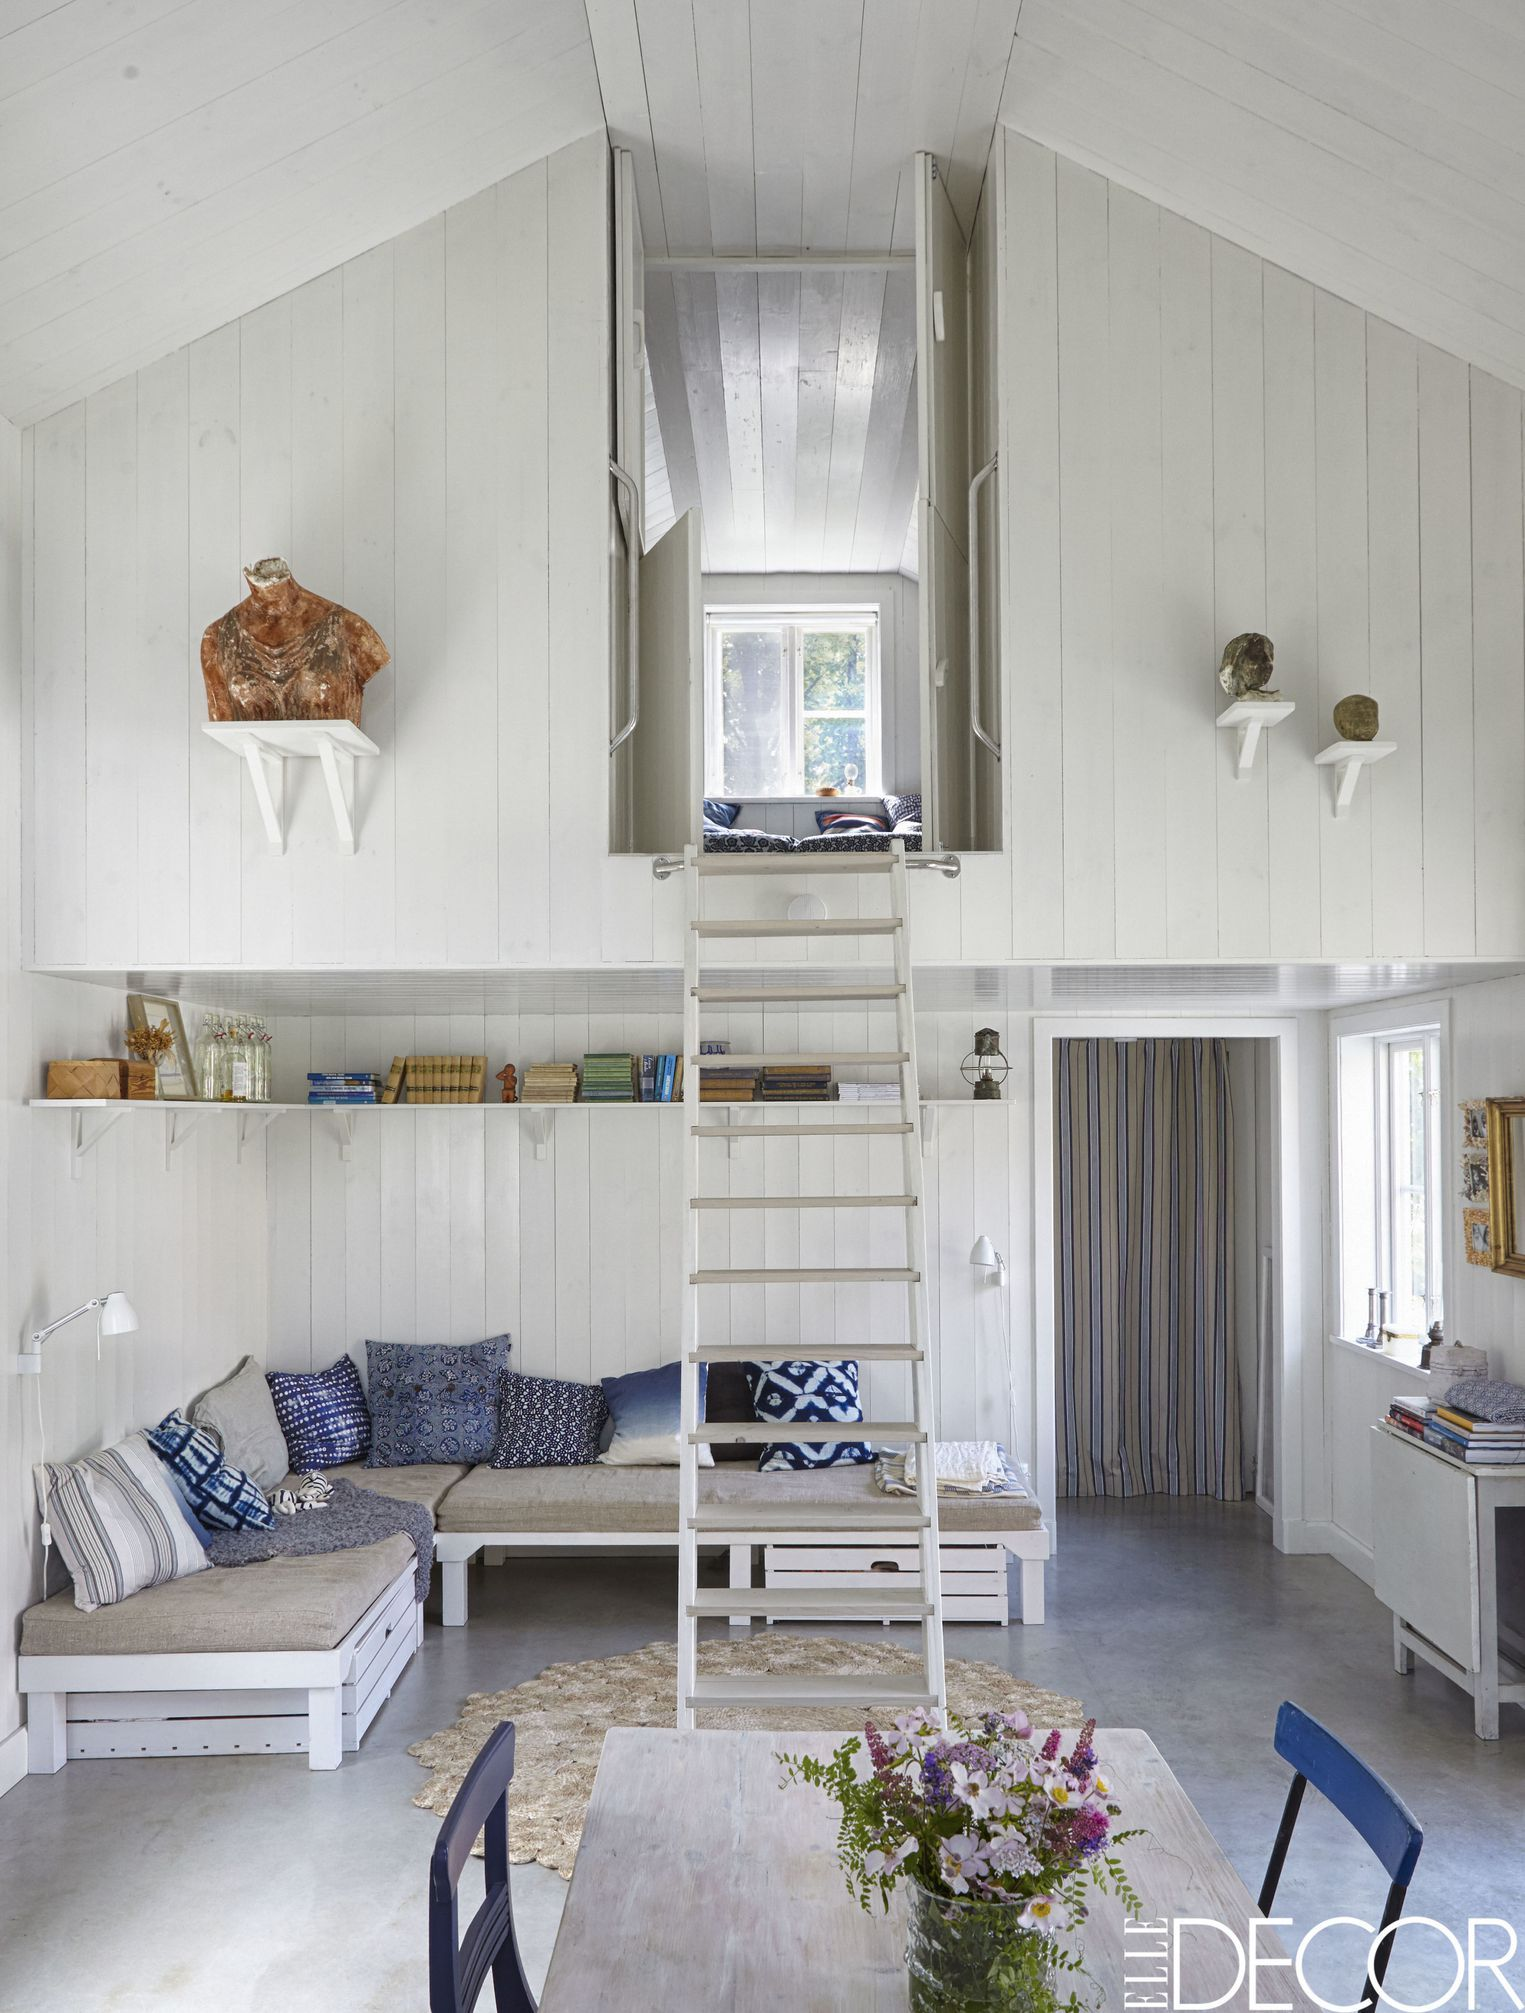 https://hips.hearstapps.com/hmg-prod.s3.amazonaws.com/images/ed-coastal-decor-rustic-swedish-cottage-2-1524517482.jpg